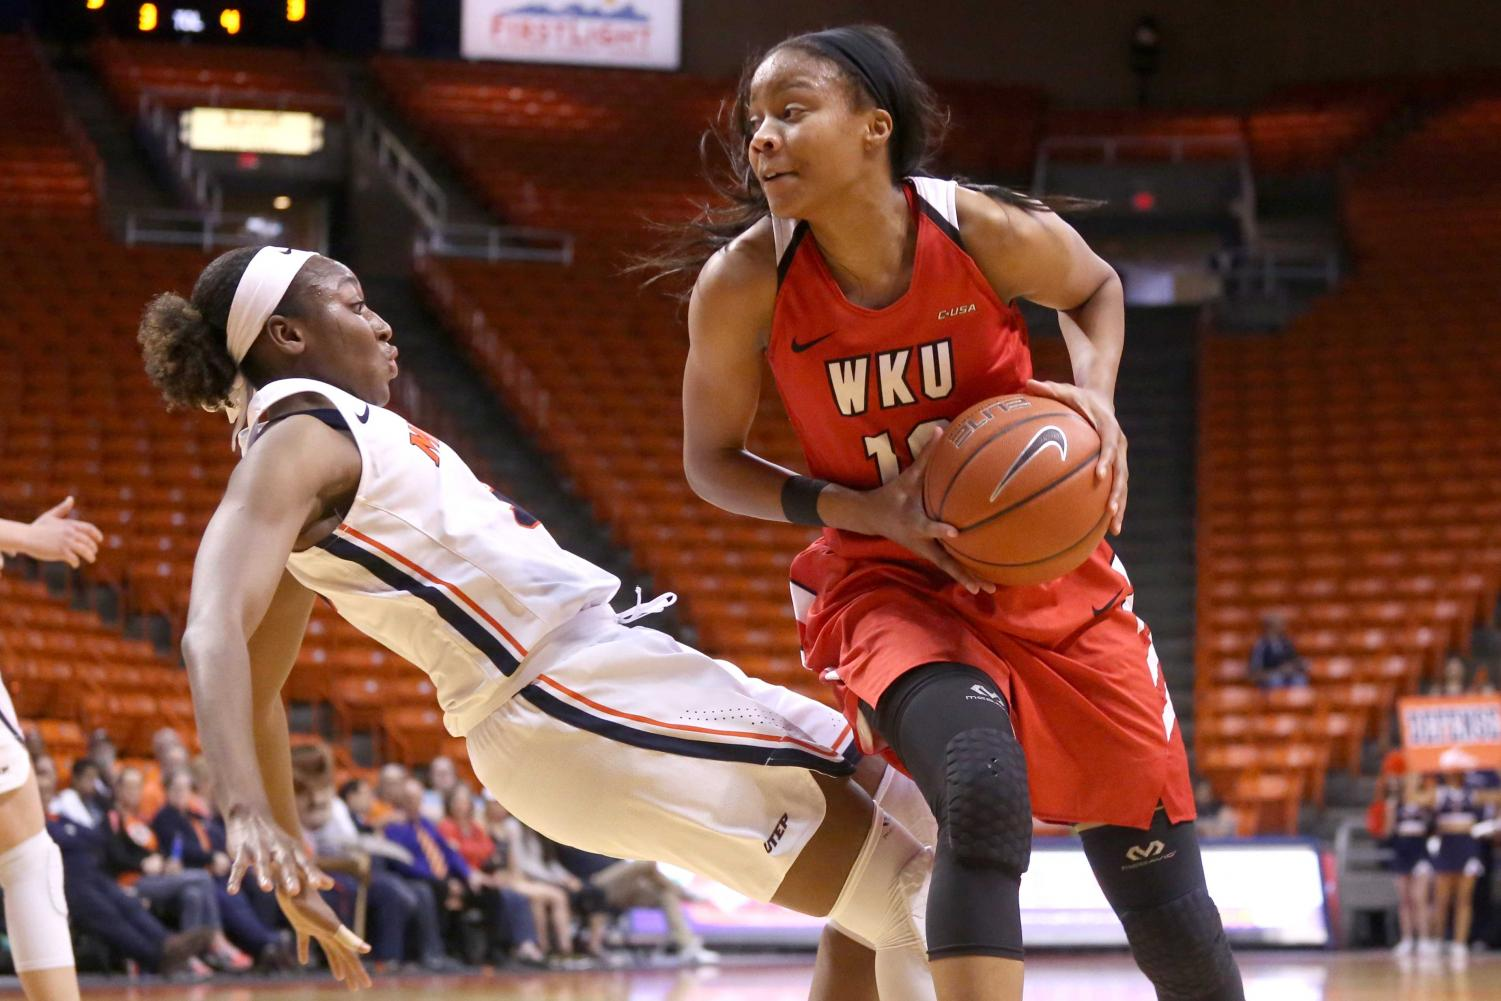 Junior+guard%2Fforward+Jordan+Alexander+attempts+to+block+WKU+and+gets+fouled+on+Saturday%2C+March+3+at+the+Don+Haskins+Center.